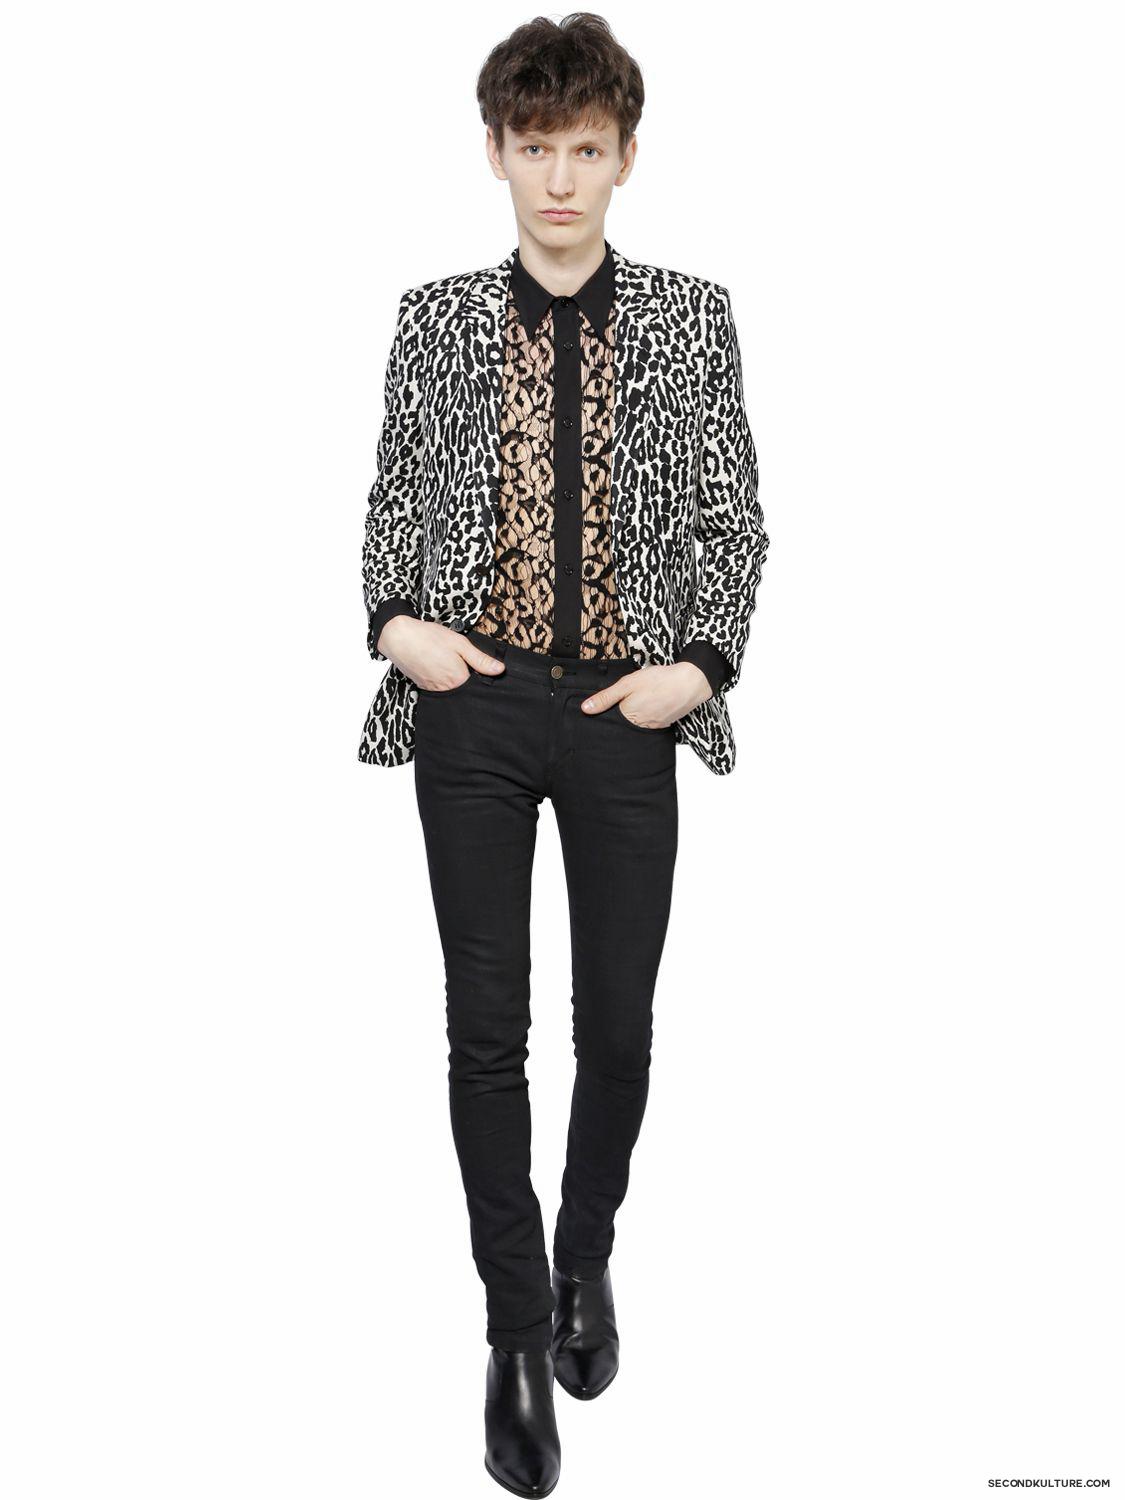 Saint-Laurent-White-Babycat-Print-Wool-Viscose-Faille-Jakcet-Fall-Winter-2015-2